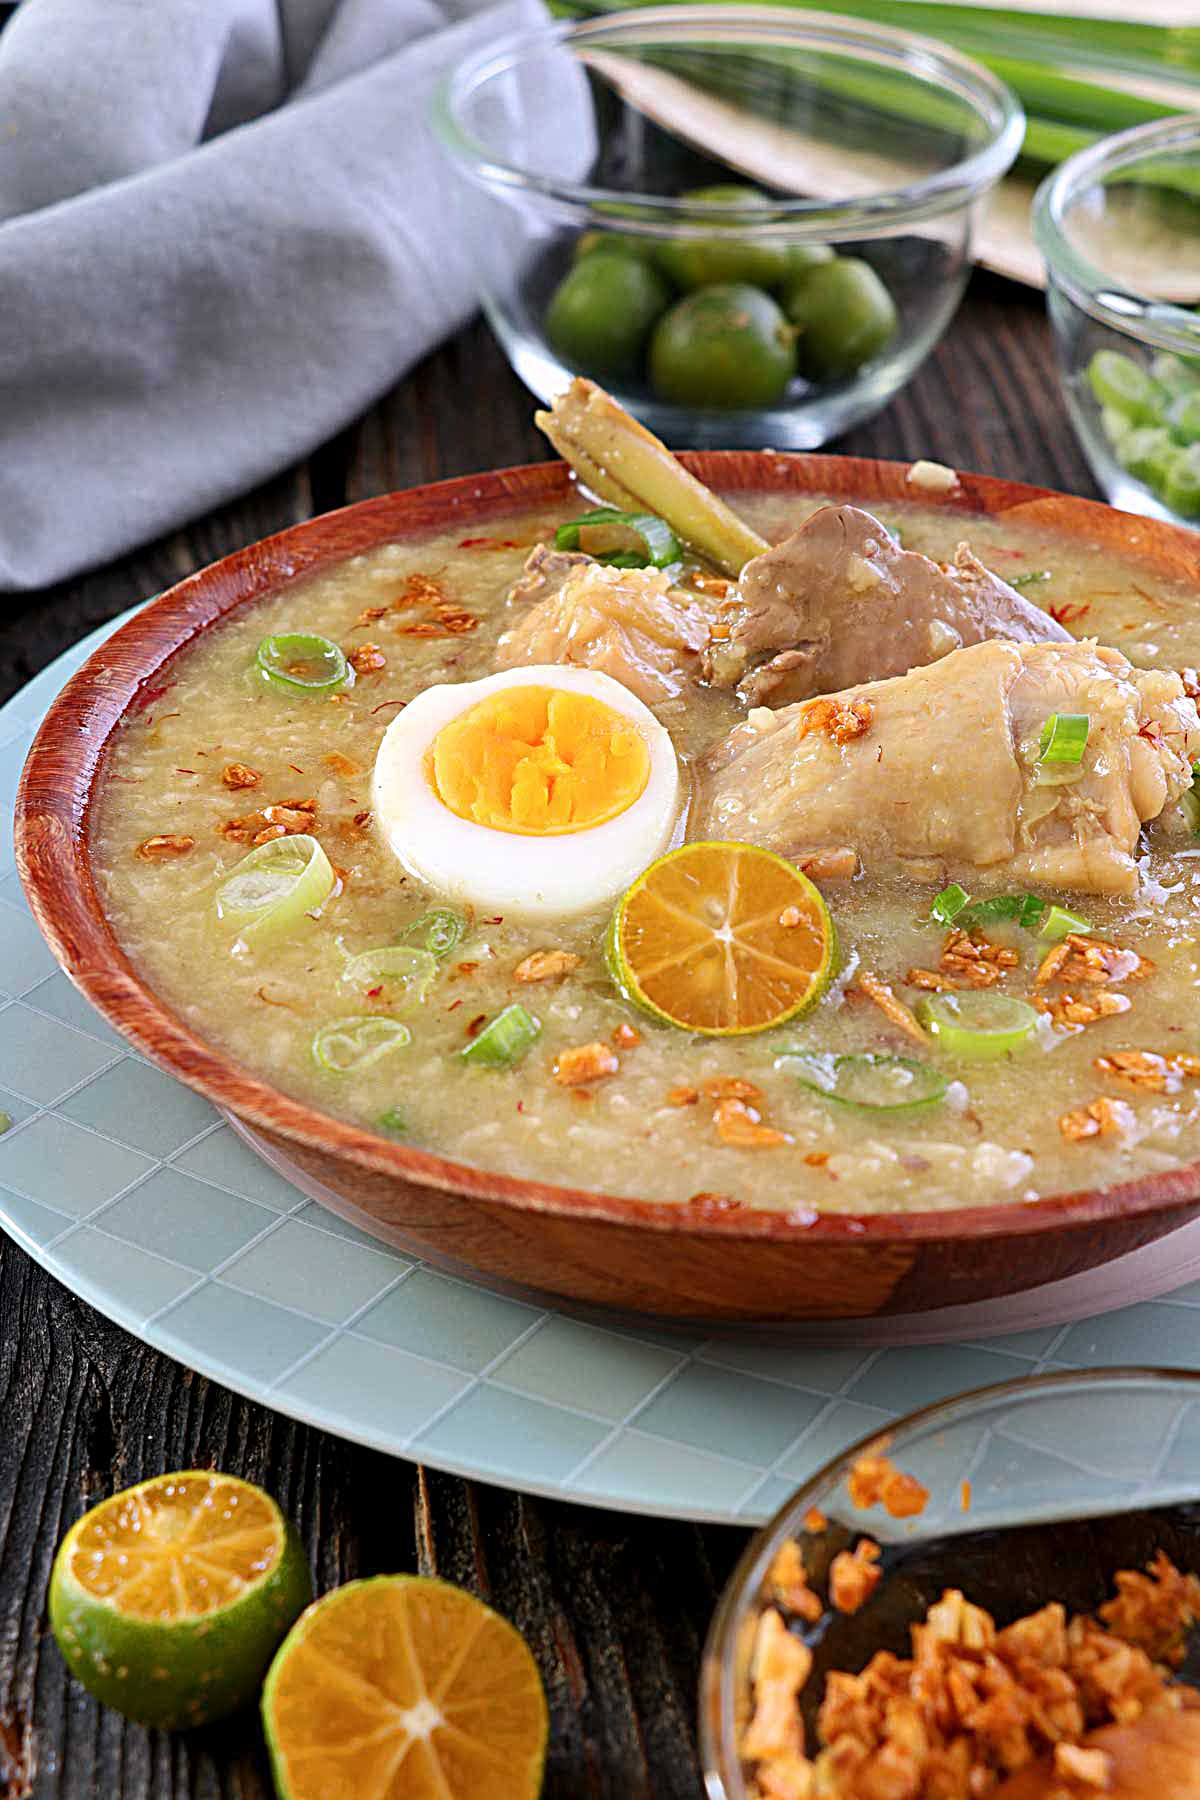 Chicken Arroz Caldo with egg, chicken liver, lemongrass, ginger, and crispy garlic